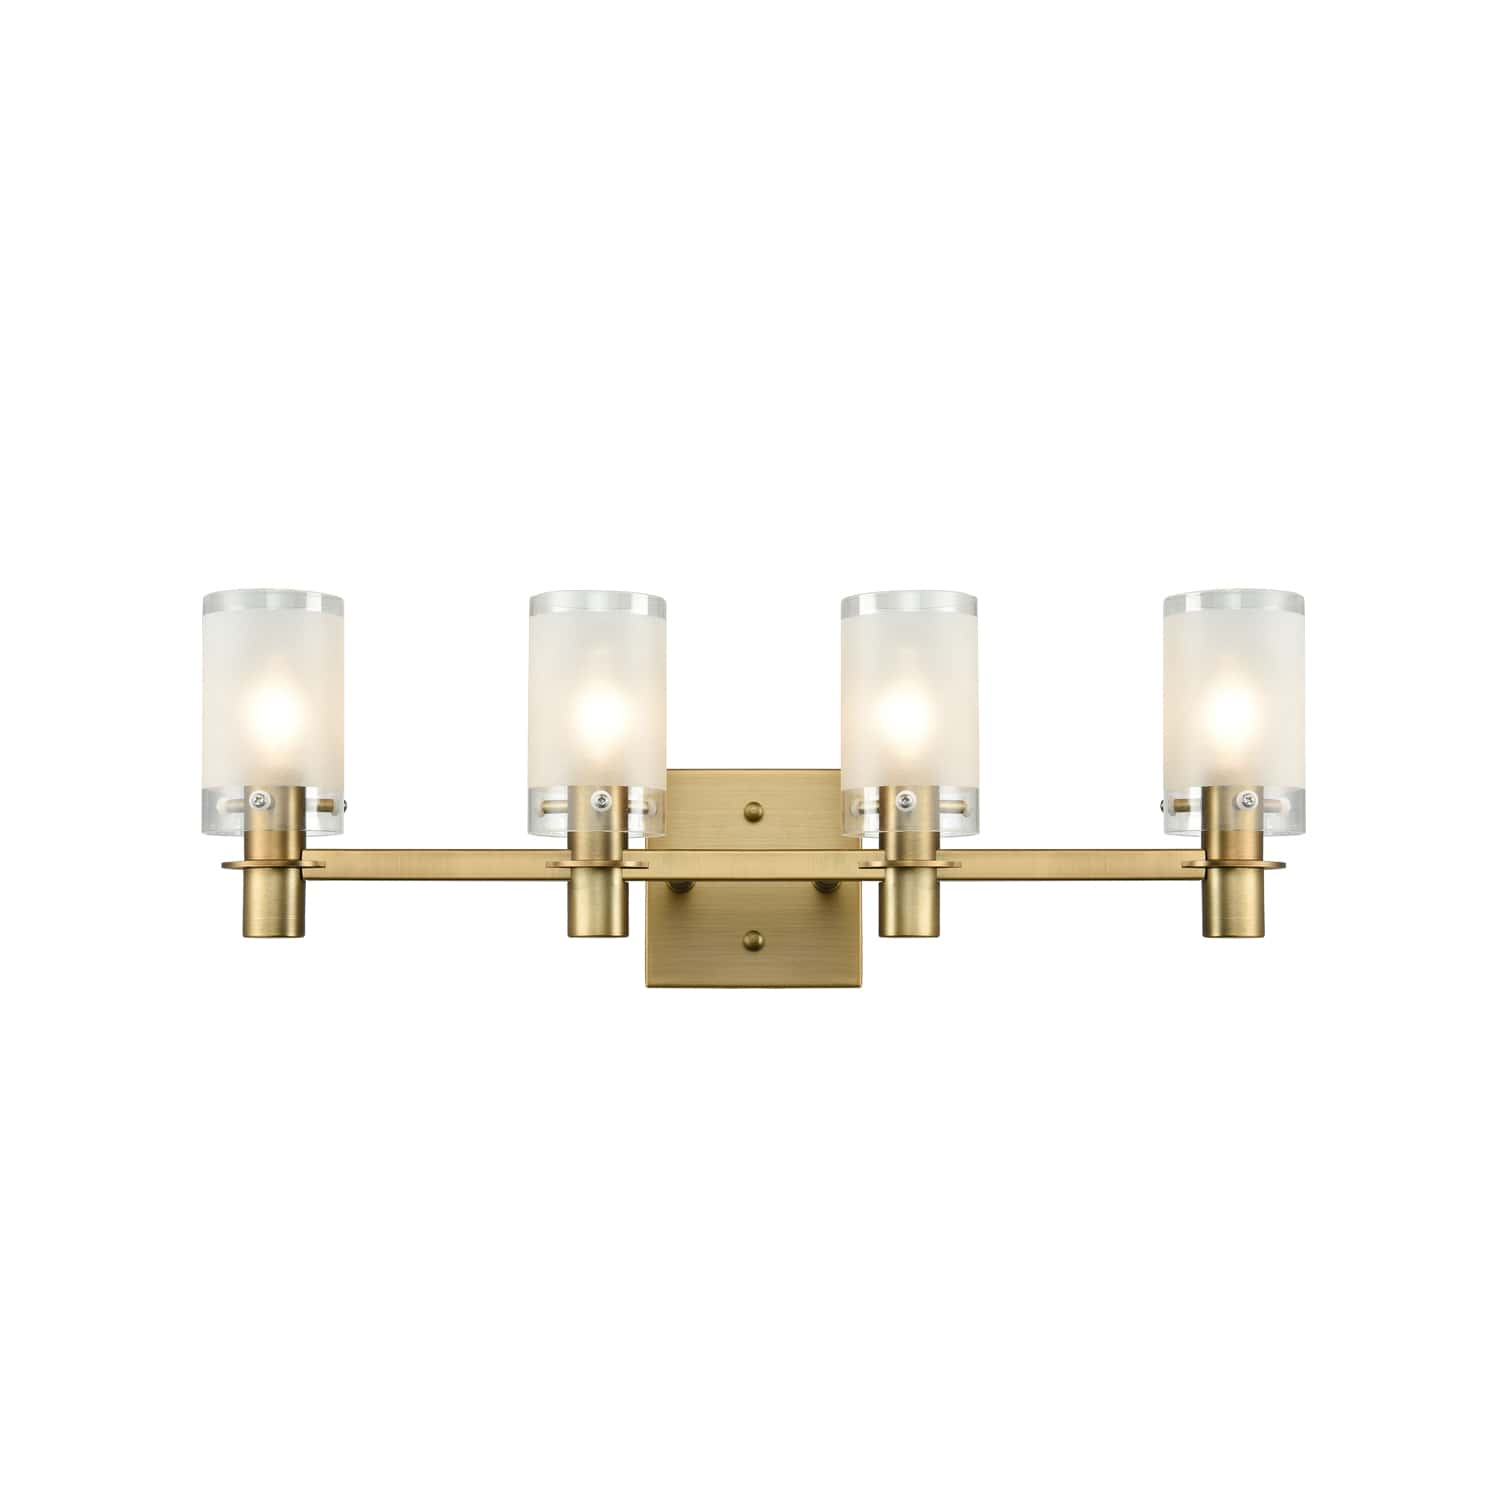 Gold Modern Wall Sconces Lighting Fixture with Frosted Glass Shade